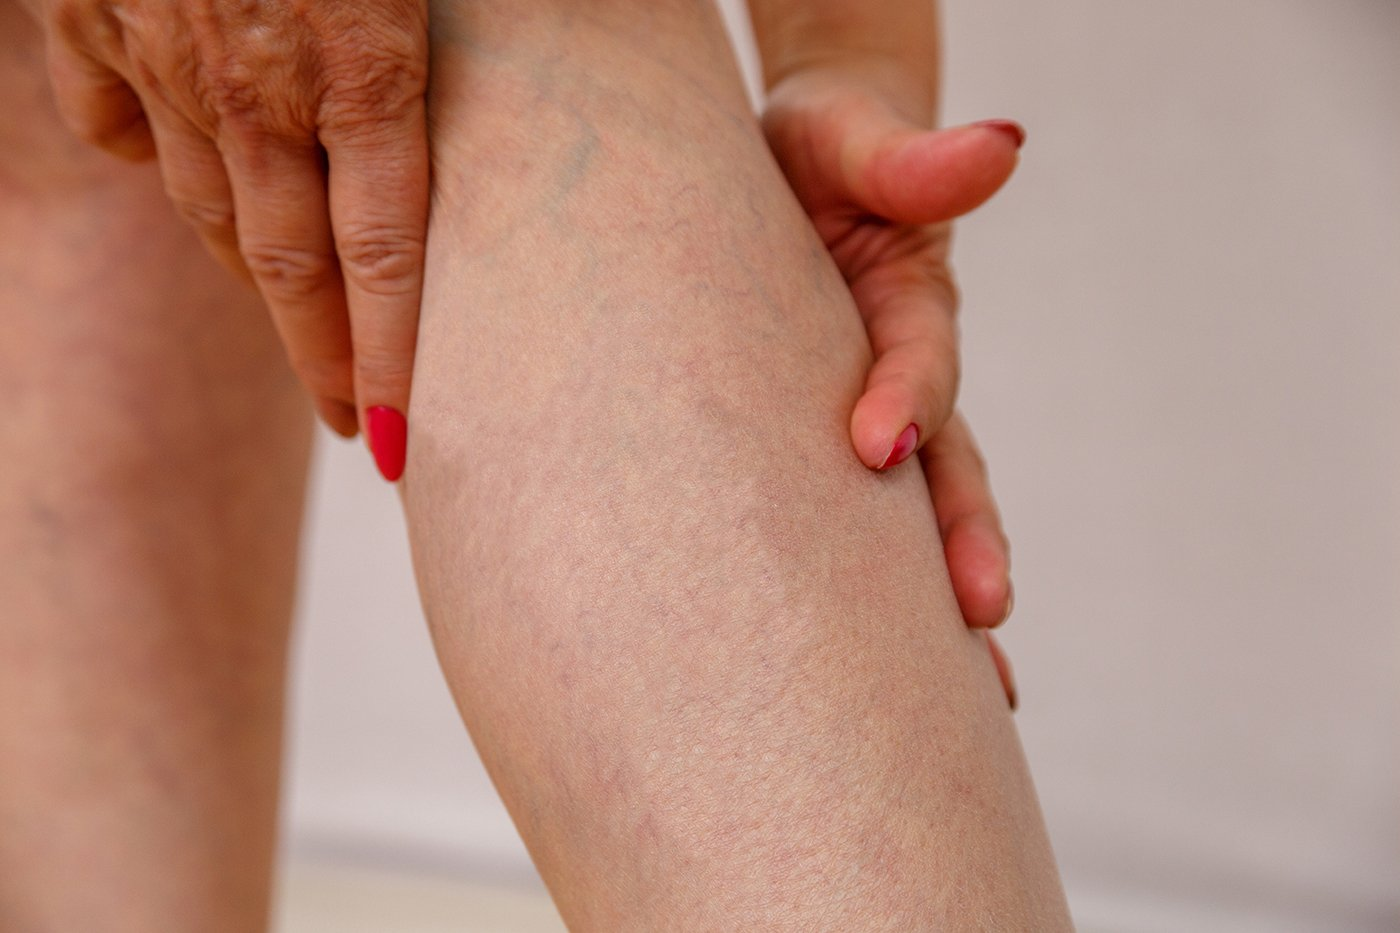 Elderly woman in white panties shows cellulite and varicose veins on a light isolated background. Concept for medicine and cosmetology.